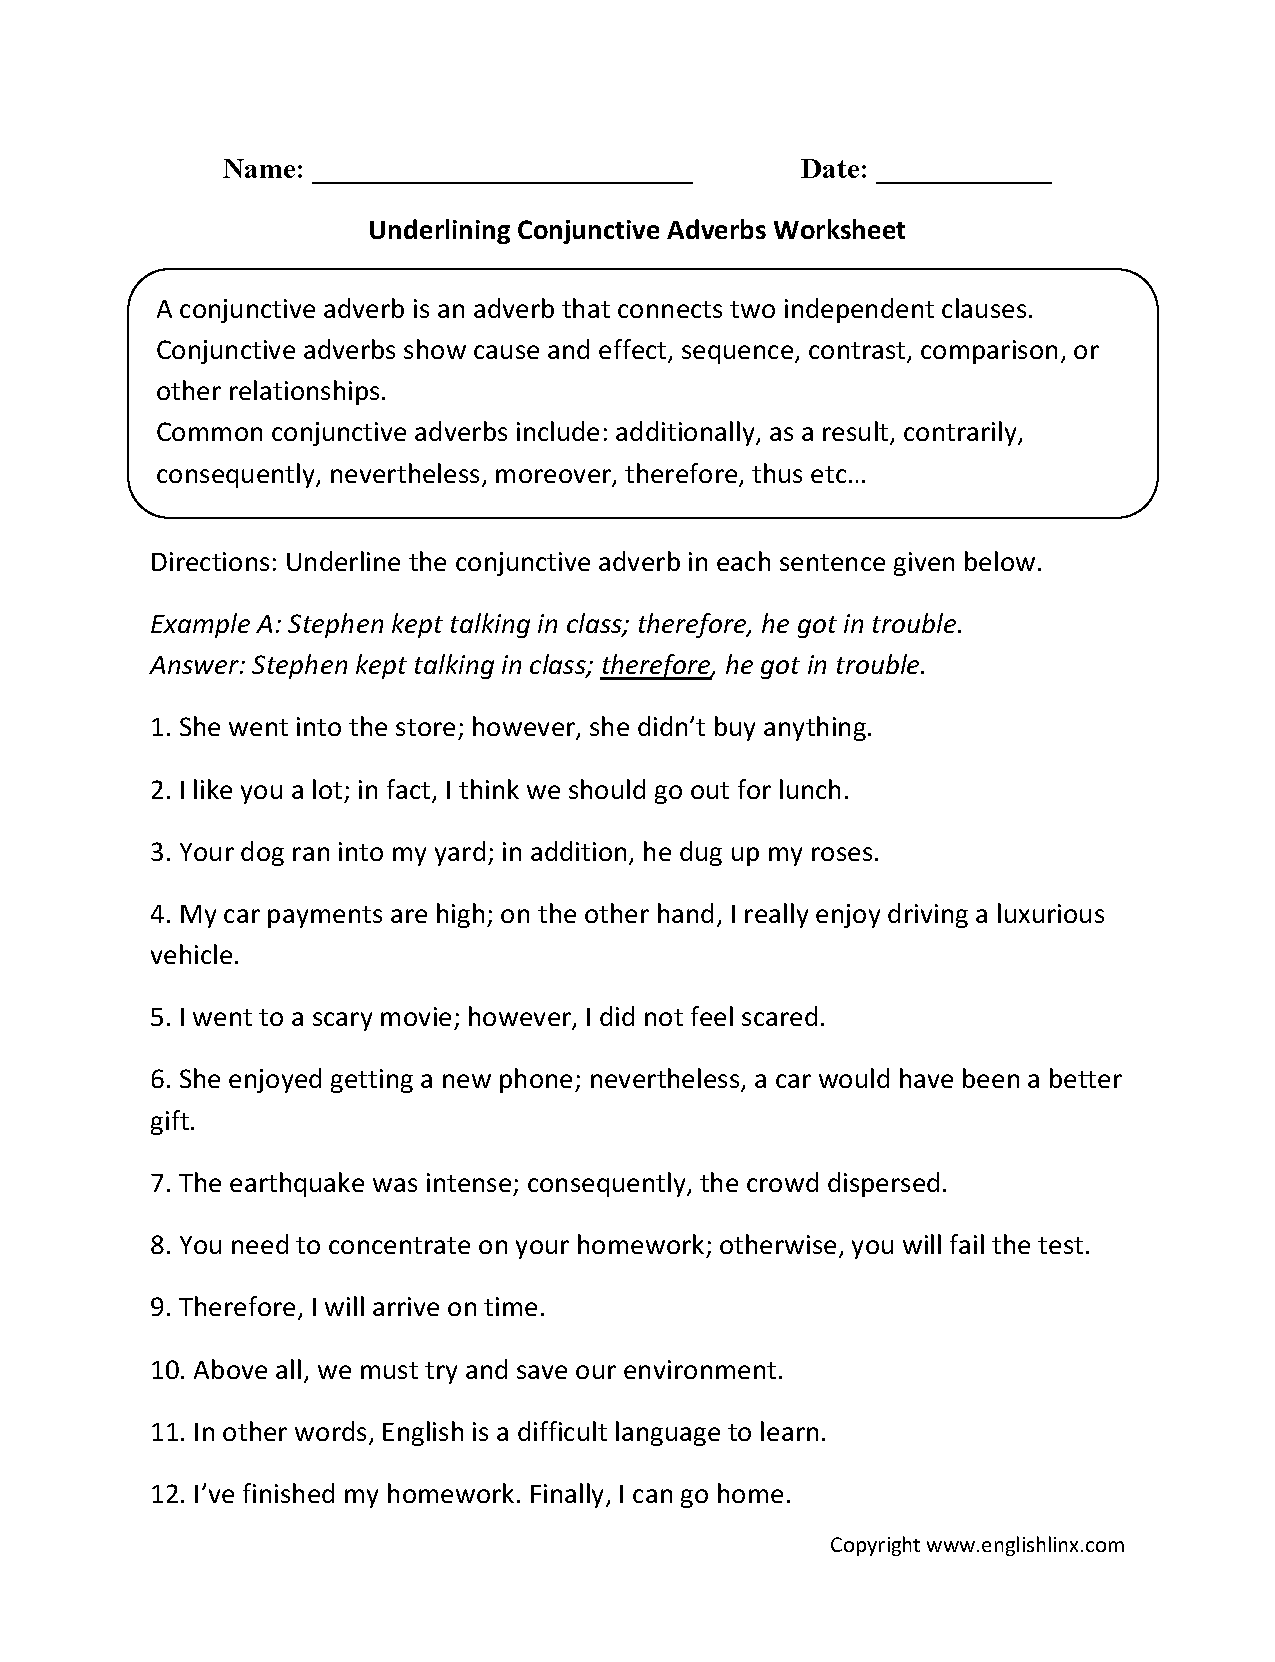 Weirdmailus  Nice Englishlinxcom  Conjunctions Worksheets With Magnificent Worksheet With Amusing Maths Free Worksheets For Grade  Also St Grade Sight Word Worksheets In Addition Constitution Worksheet Pdf And Solution Stoichiometry Worksheet With Answers As Well As Balance Checkbook Worksheet Additionally Mineral Worksheet From Englishlinxcom With Weirdmailus  Magnificent Englishlinxcom  Conjunctions Worksheets With Amusing Worksheet And Nice Maths Free Worksheets For Grade  Also St Grade Sight Word Worksheets In Addition Constitution Worksheet Pdf From Englishlinxcom